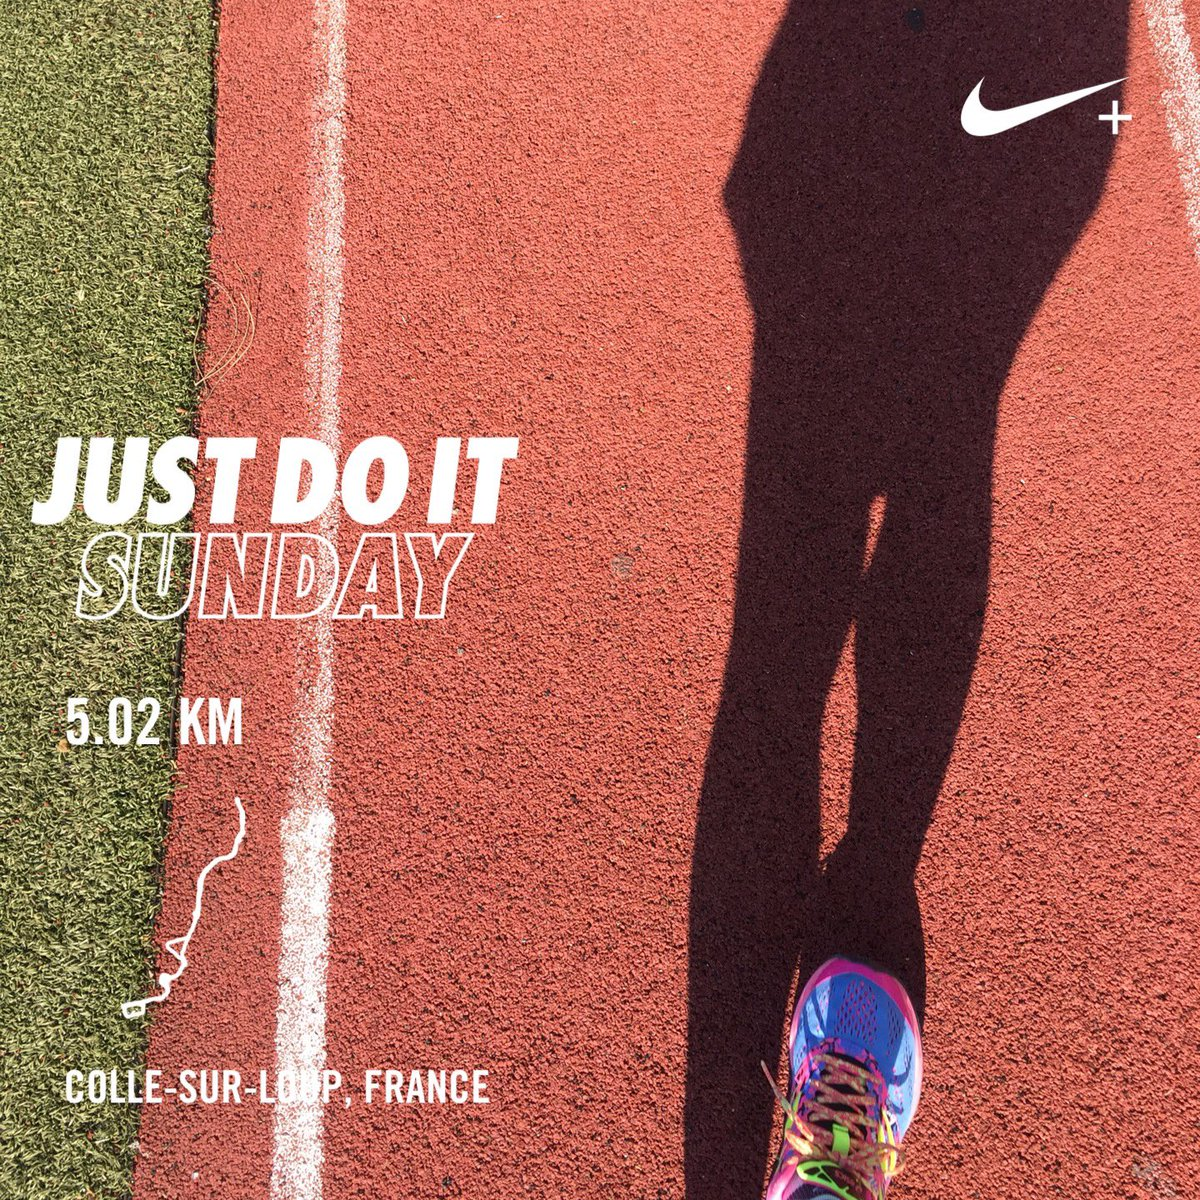 Back to Sunday 5km runs after a long break! #JustDoIt #teamawesome #justdoitsunday #5km #sundayrun #nikerunclub #nikewomen<br>http://pic.twitter.com/WvyBvrriDf